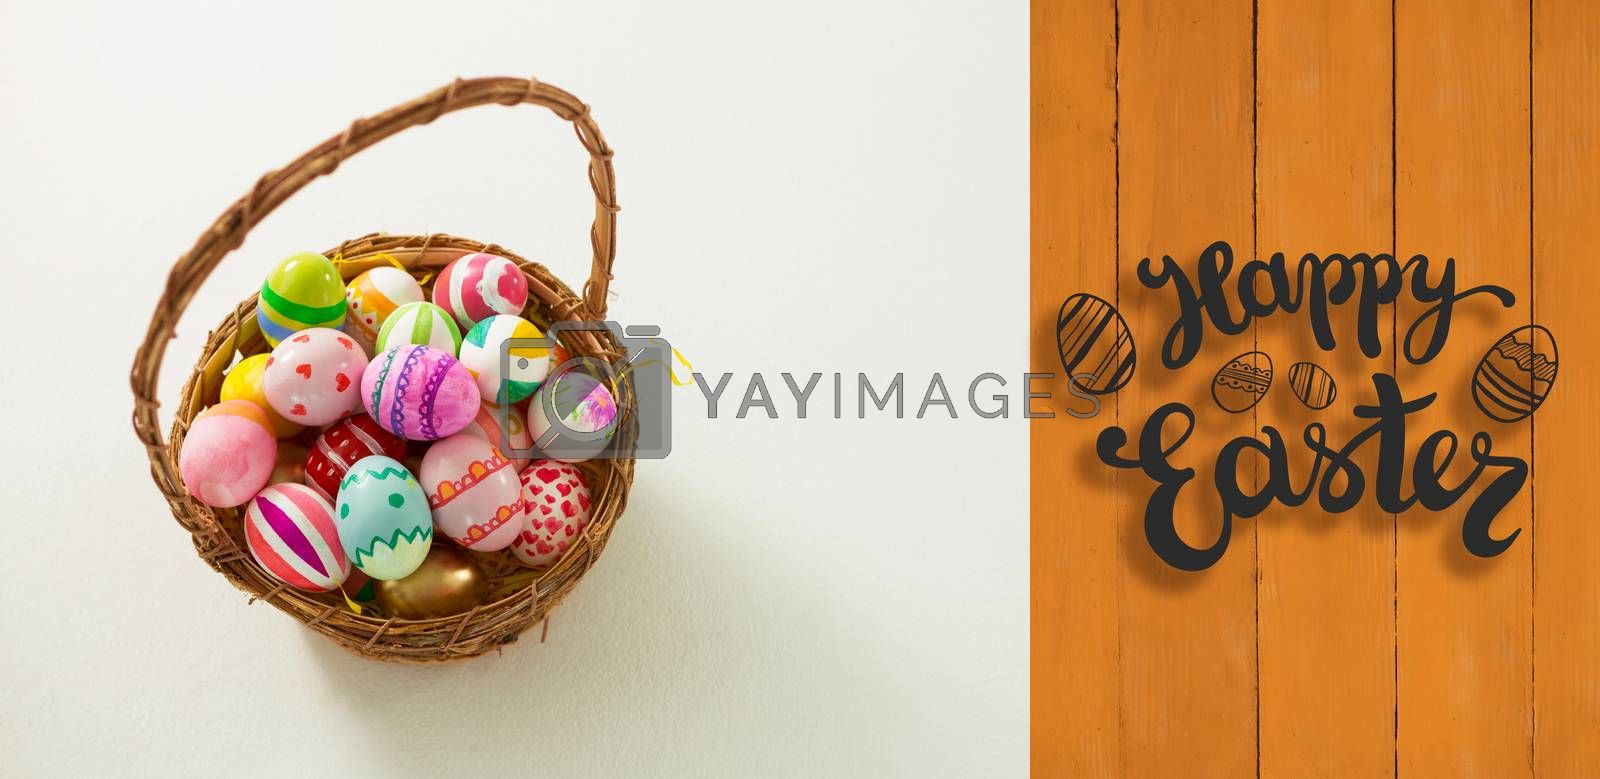 Happy Easter greeting against wooden planks